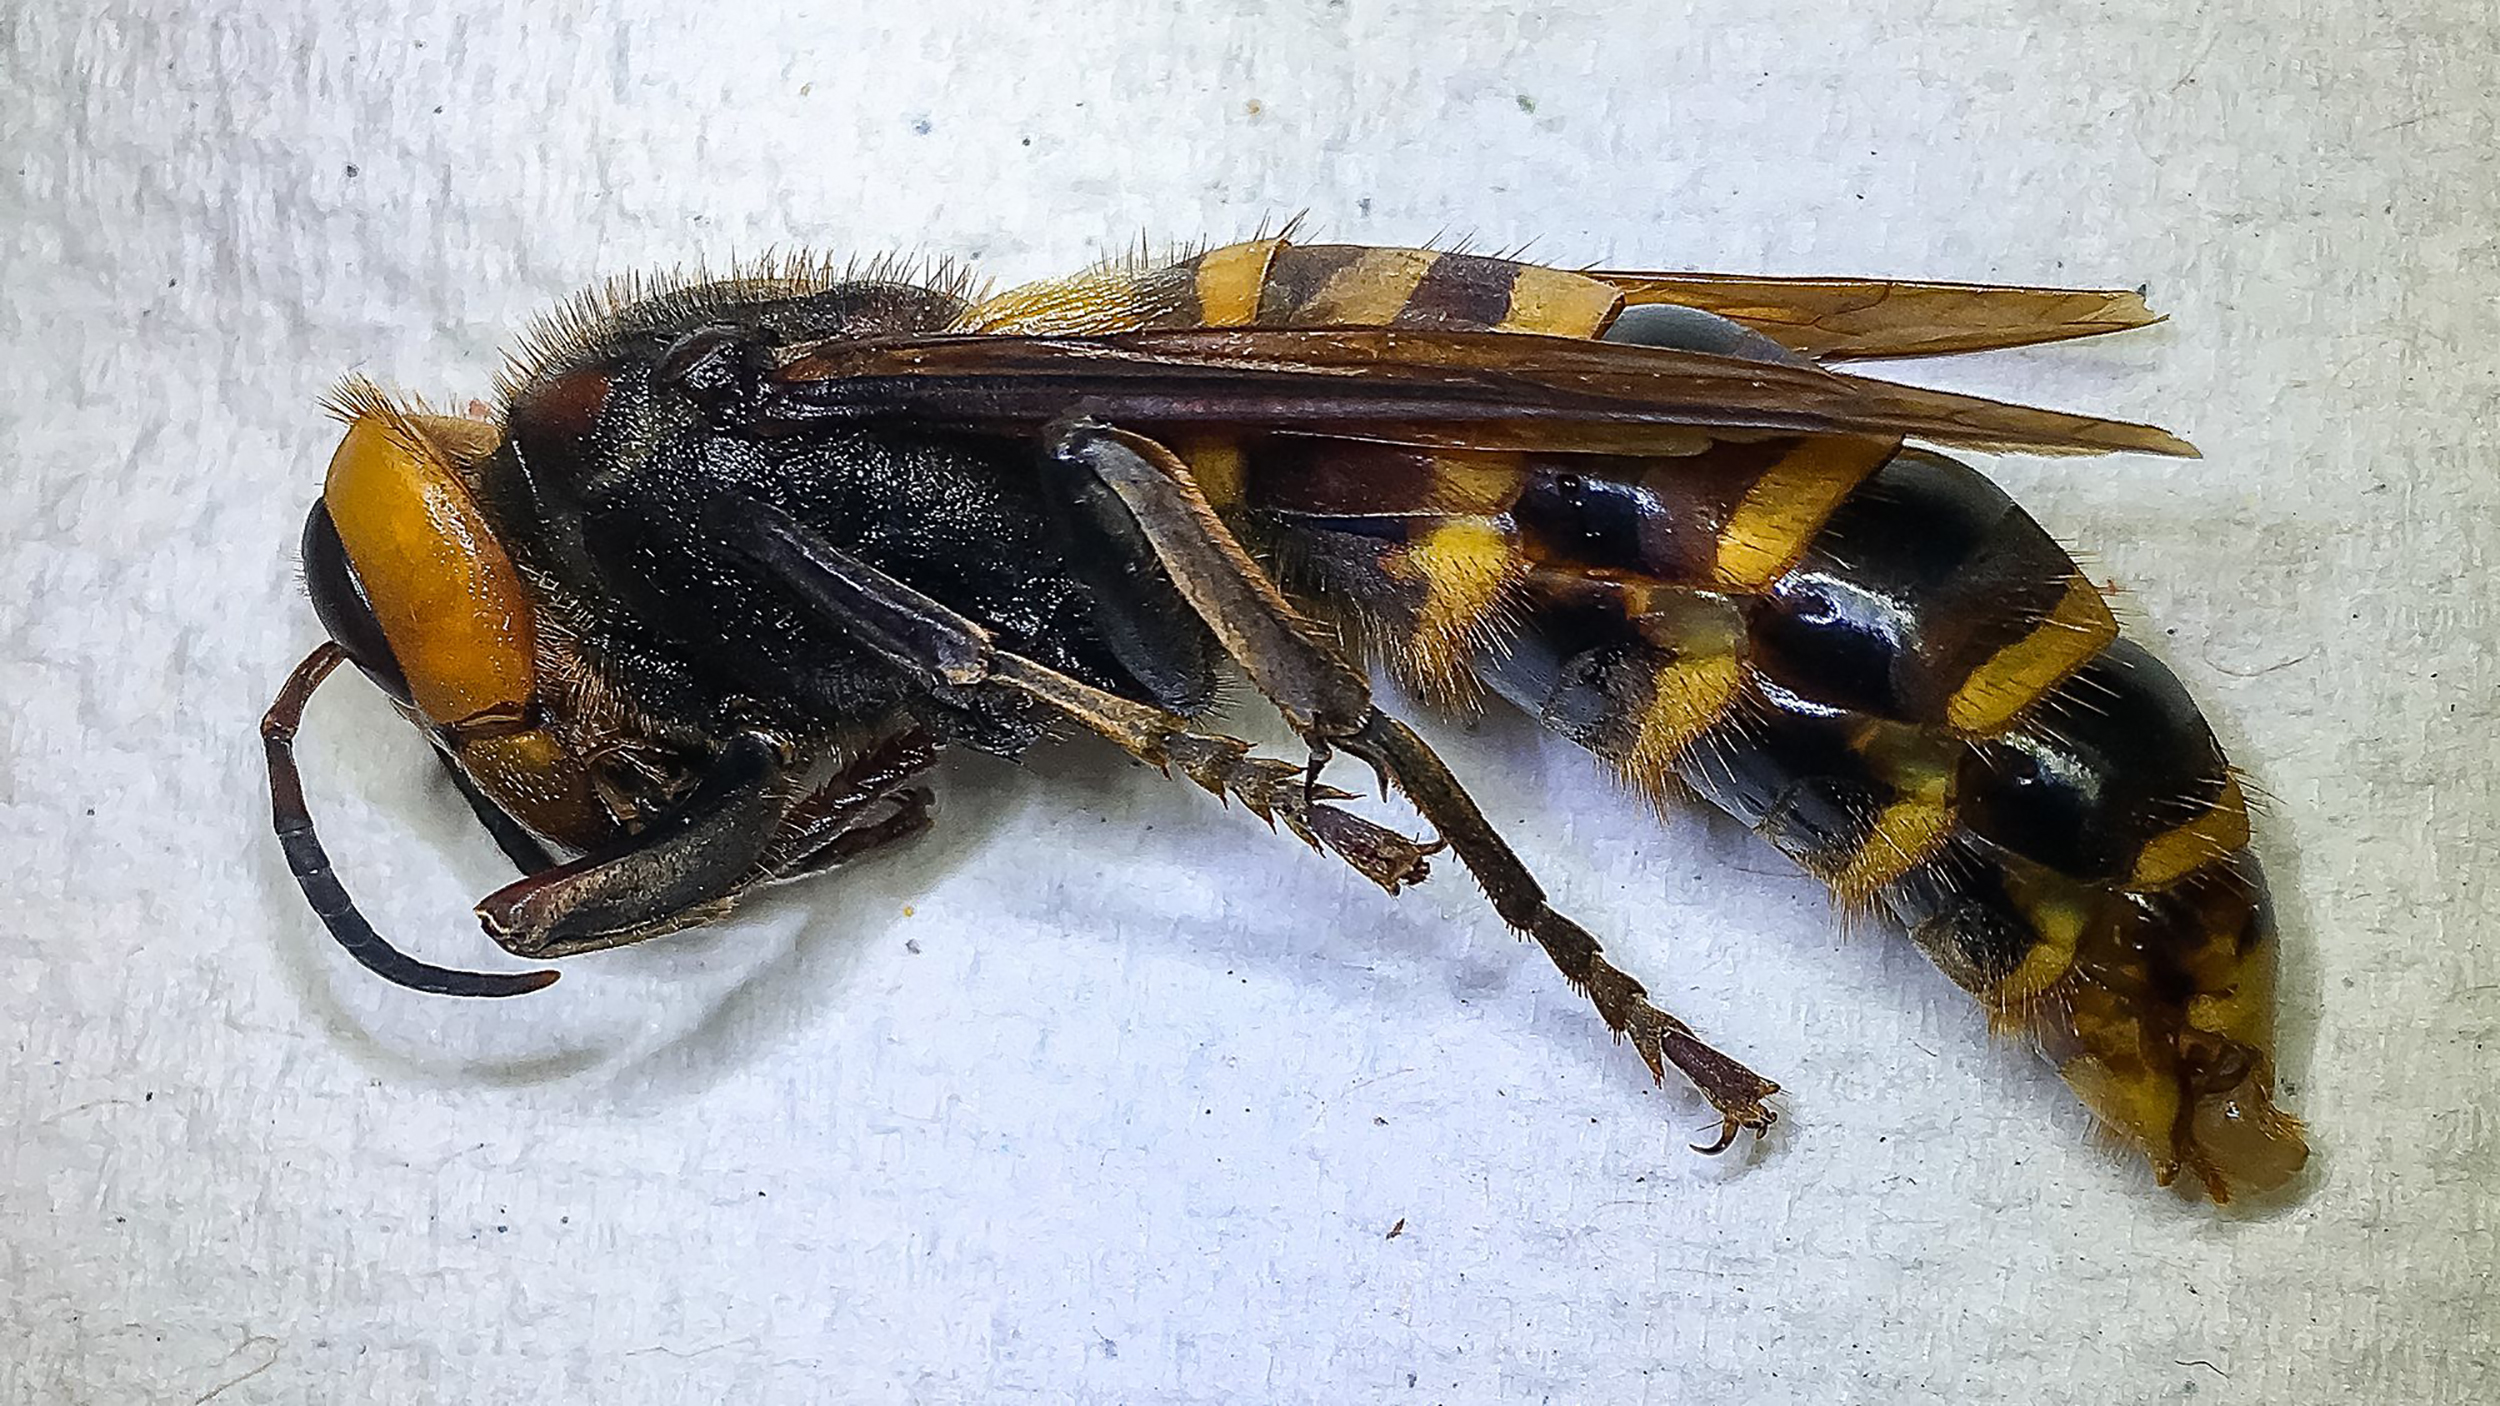 This hornet was found in a trap set by the Washington State Department of Agriculture near Birch Bay in Whatcom County. Trappers checked the bottle trap on July 14, 2020. (WSDA)